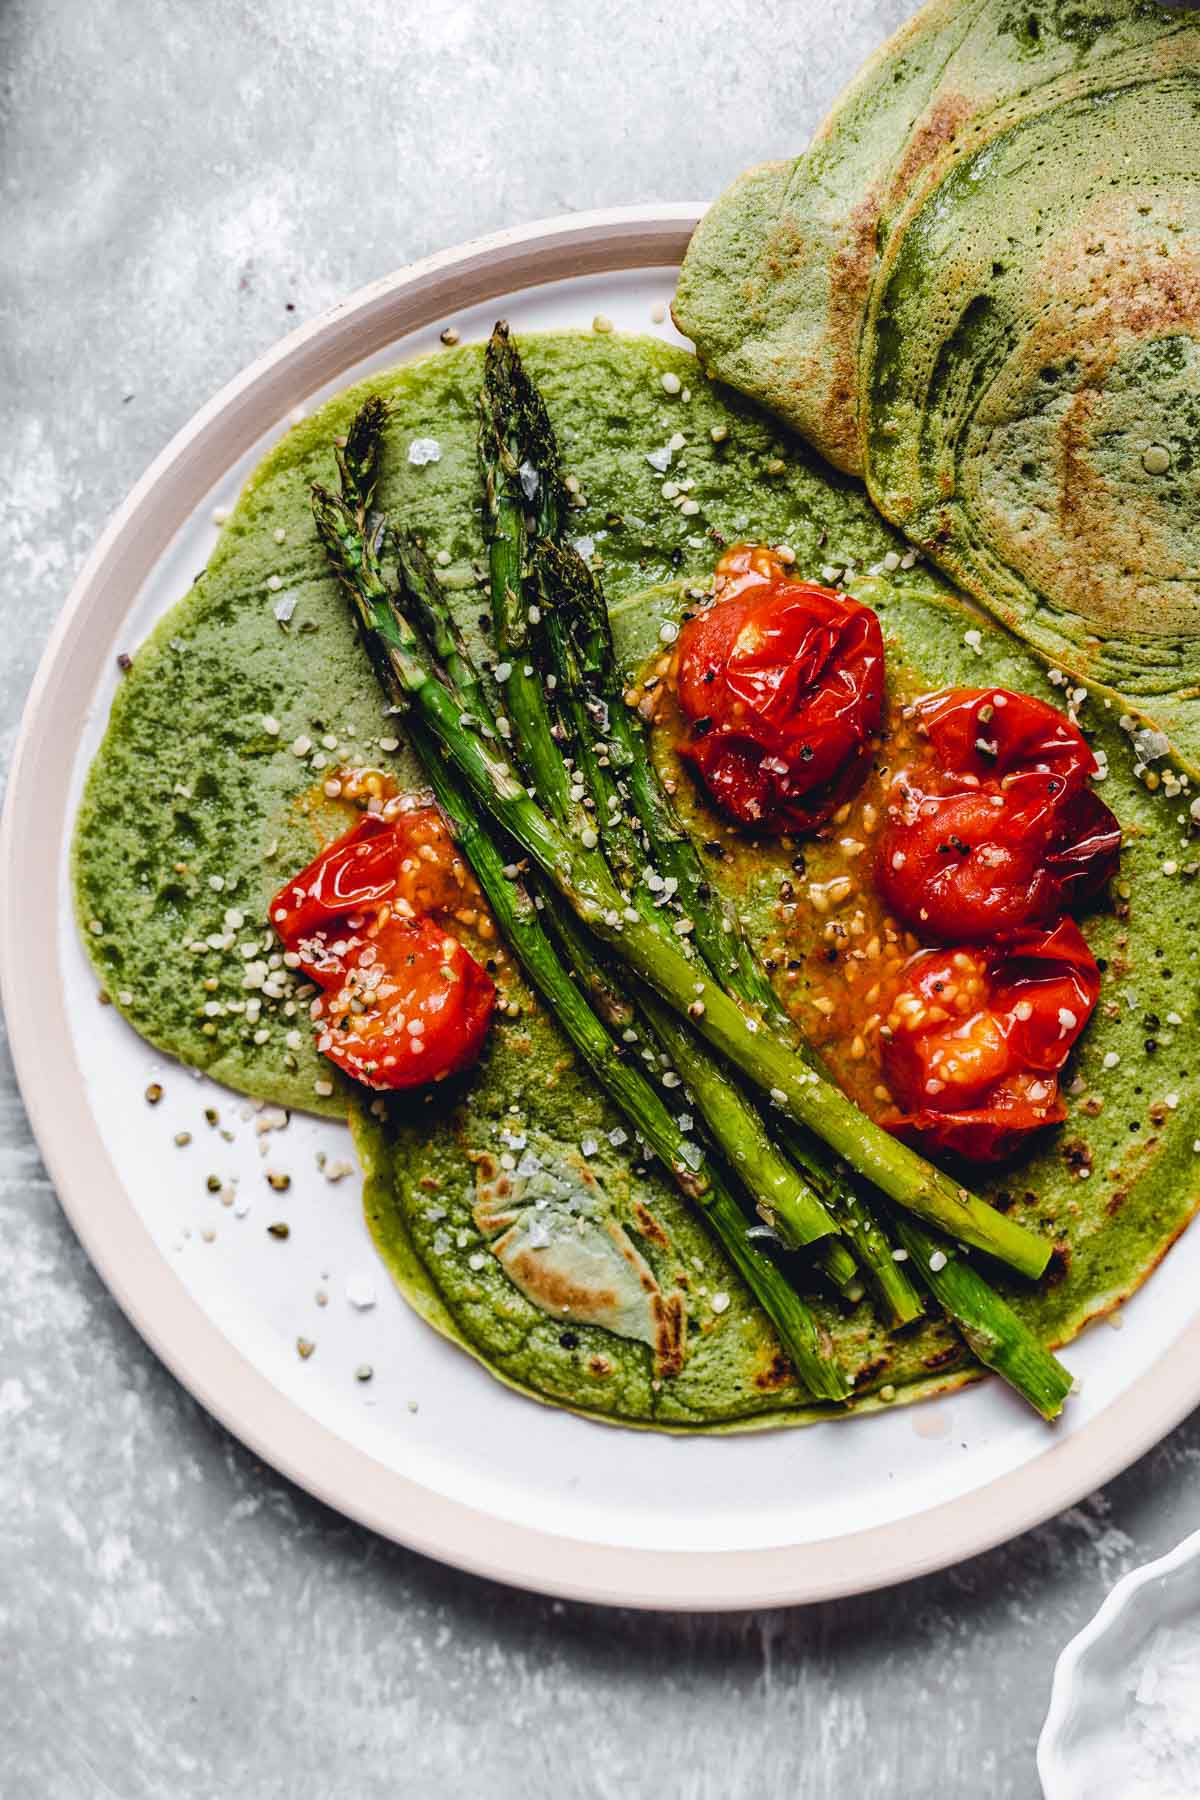 A close-up overhead view of the spinach crepes topped off with tomatoes and asparagus.